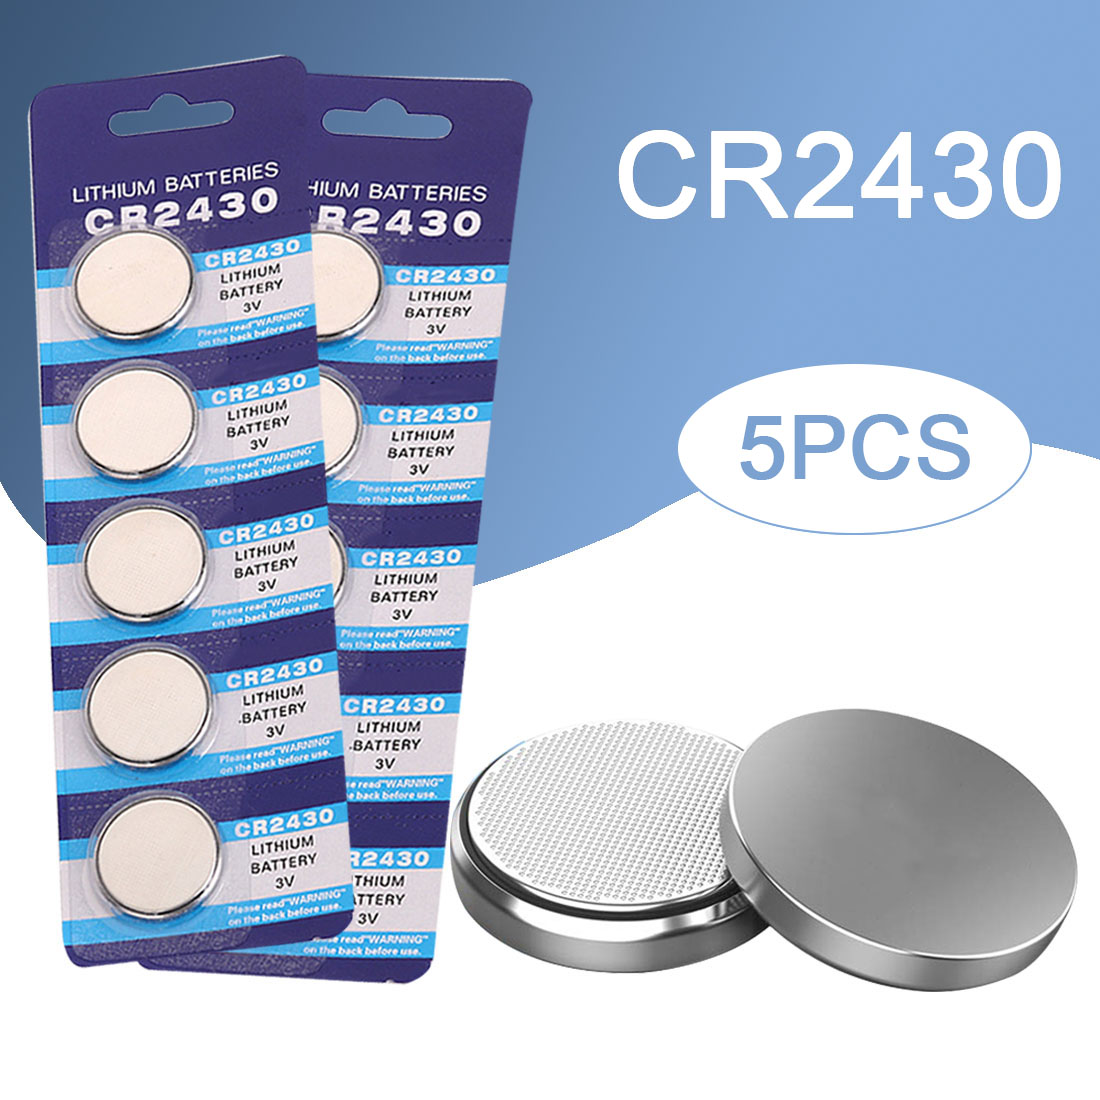 5PCS CR2430 Button Battery Watch Battery DL2430 BR2430 ECR2430 Coin Cell Lithium Batteries For Watch Toy Calculator Clock